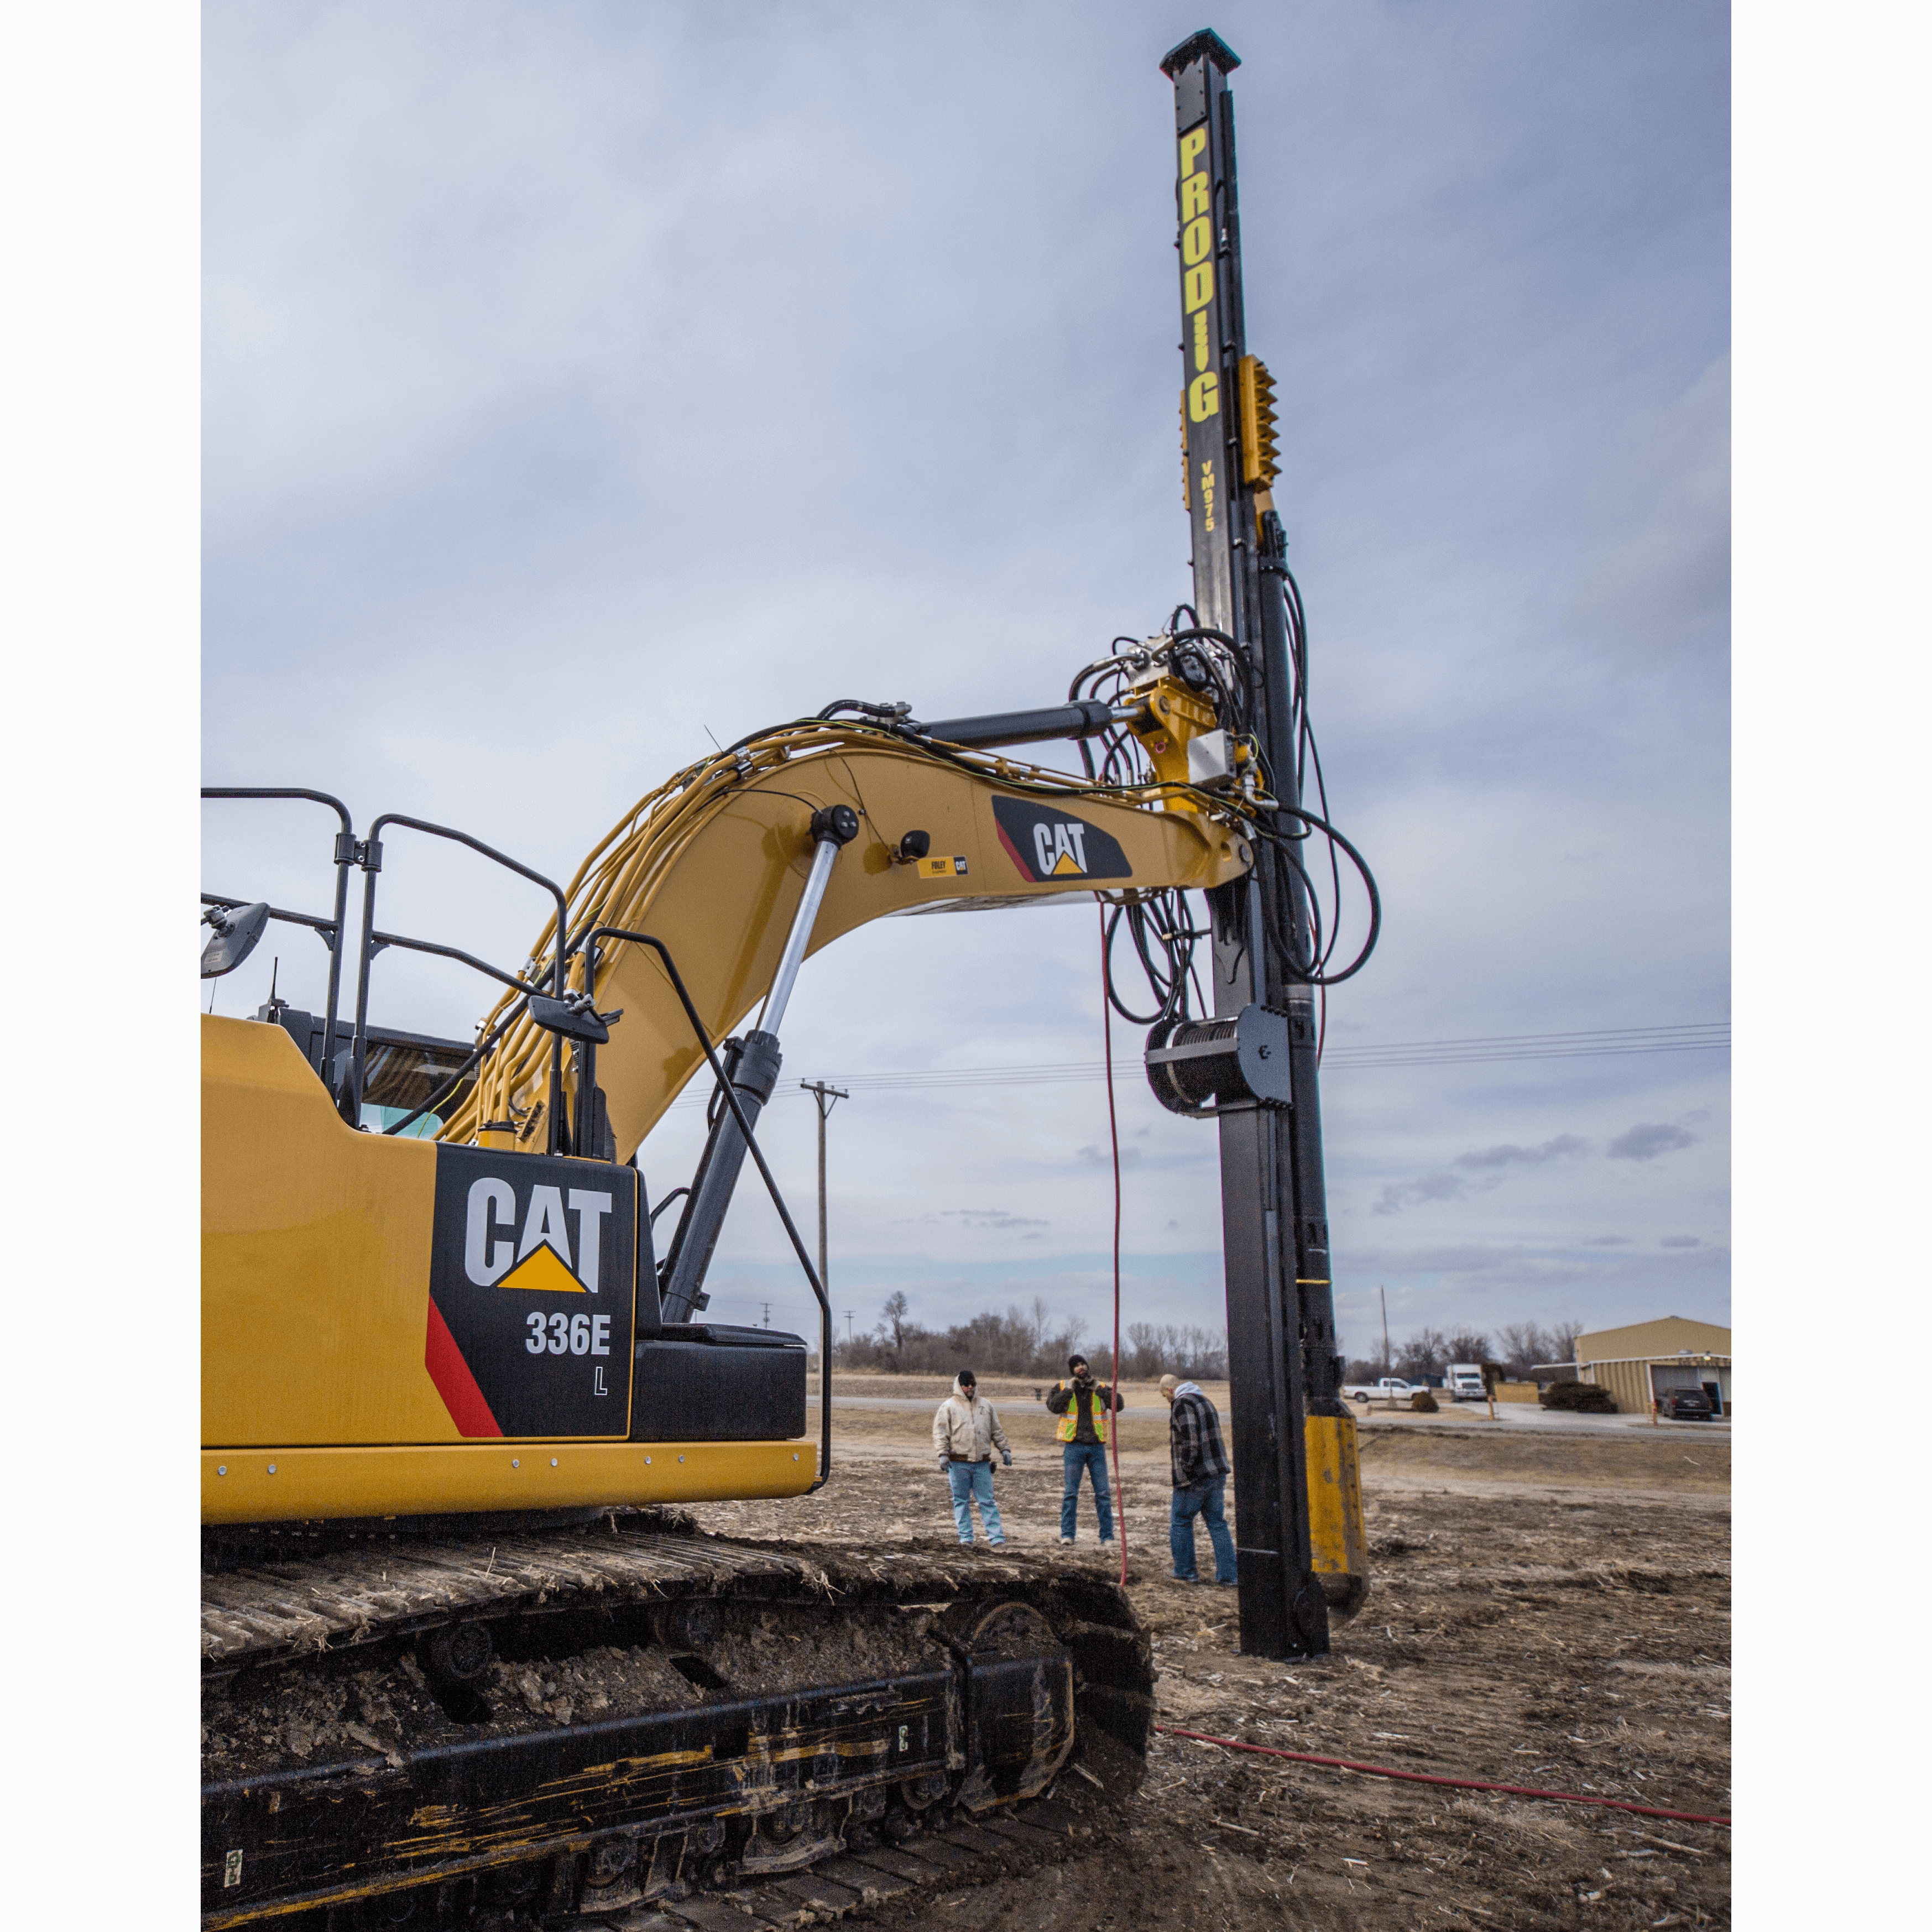 Helical Pile & Auger Drill | Helicals Pile & Auger Drills by Pro Dig USA